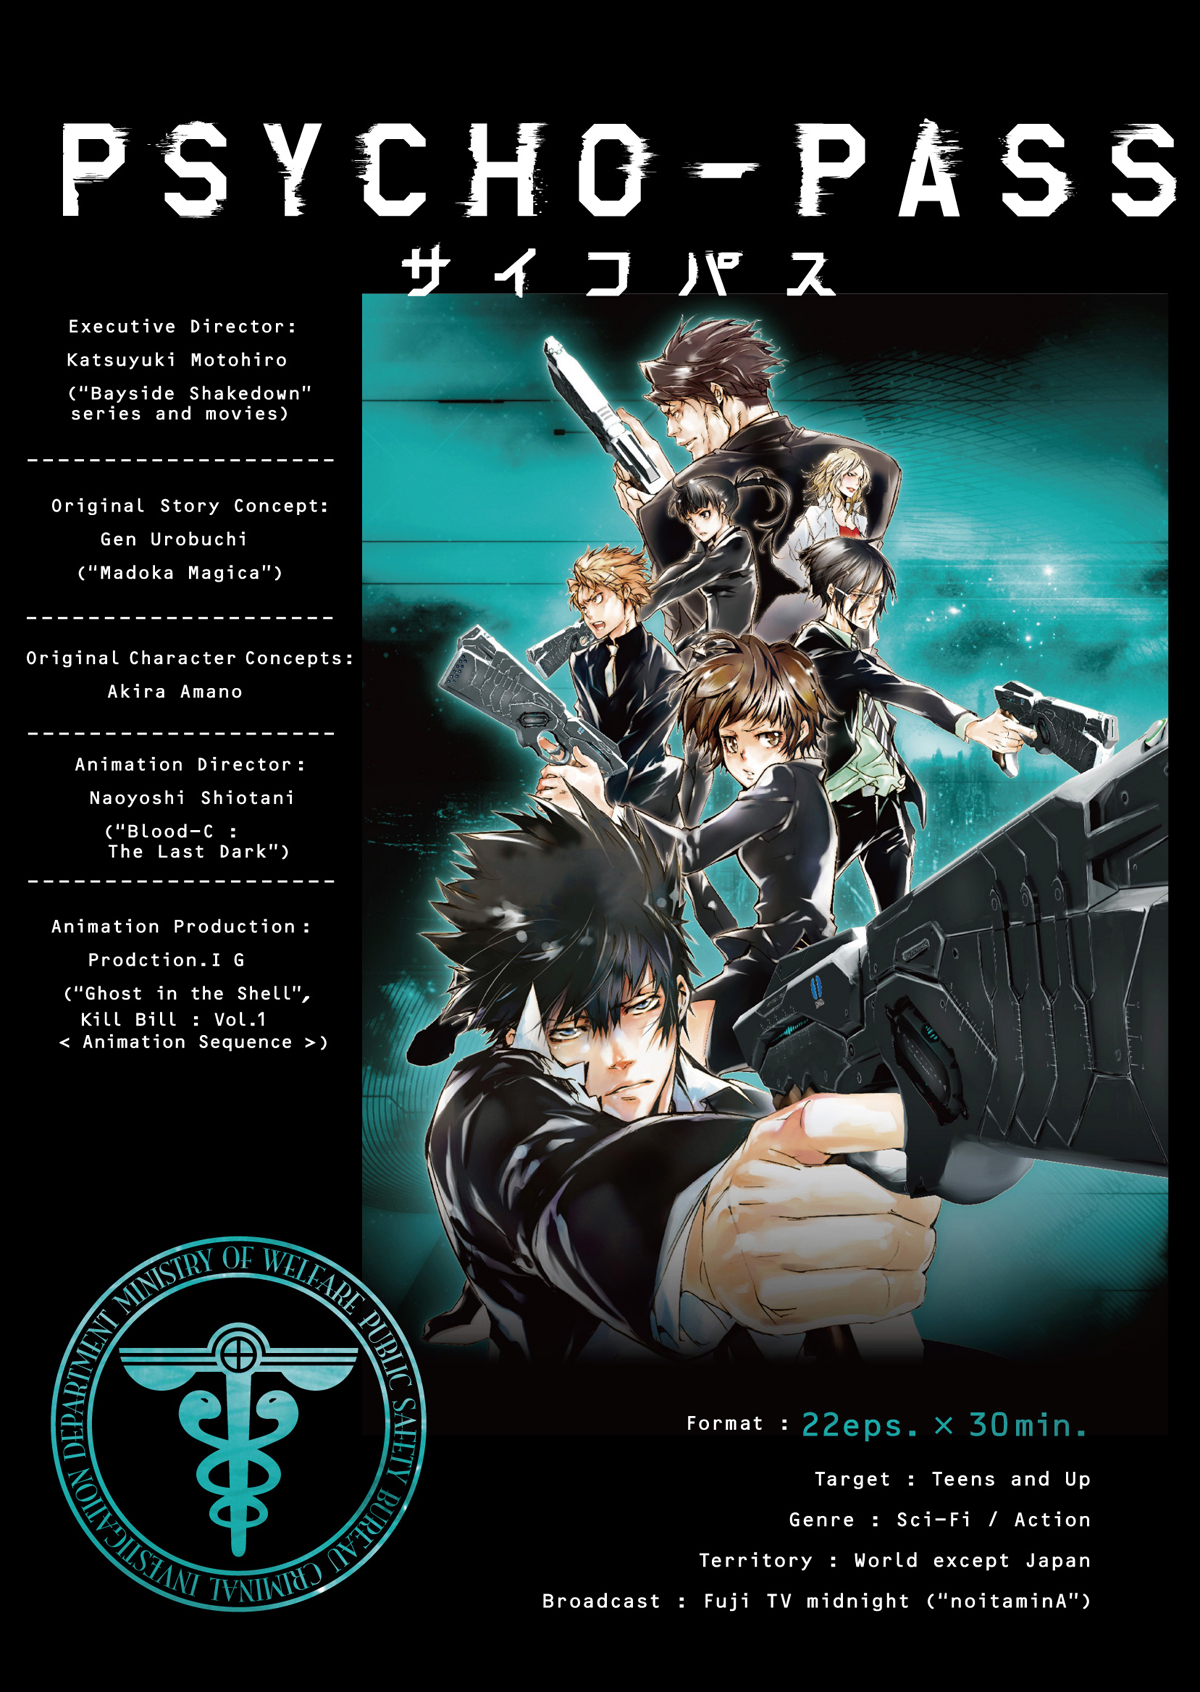 http://www.fujicreative.co.jp/Portals/0/special/anime/Psycho-pass/images/psycho-pass_01_01.jpg